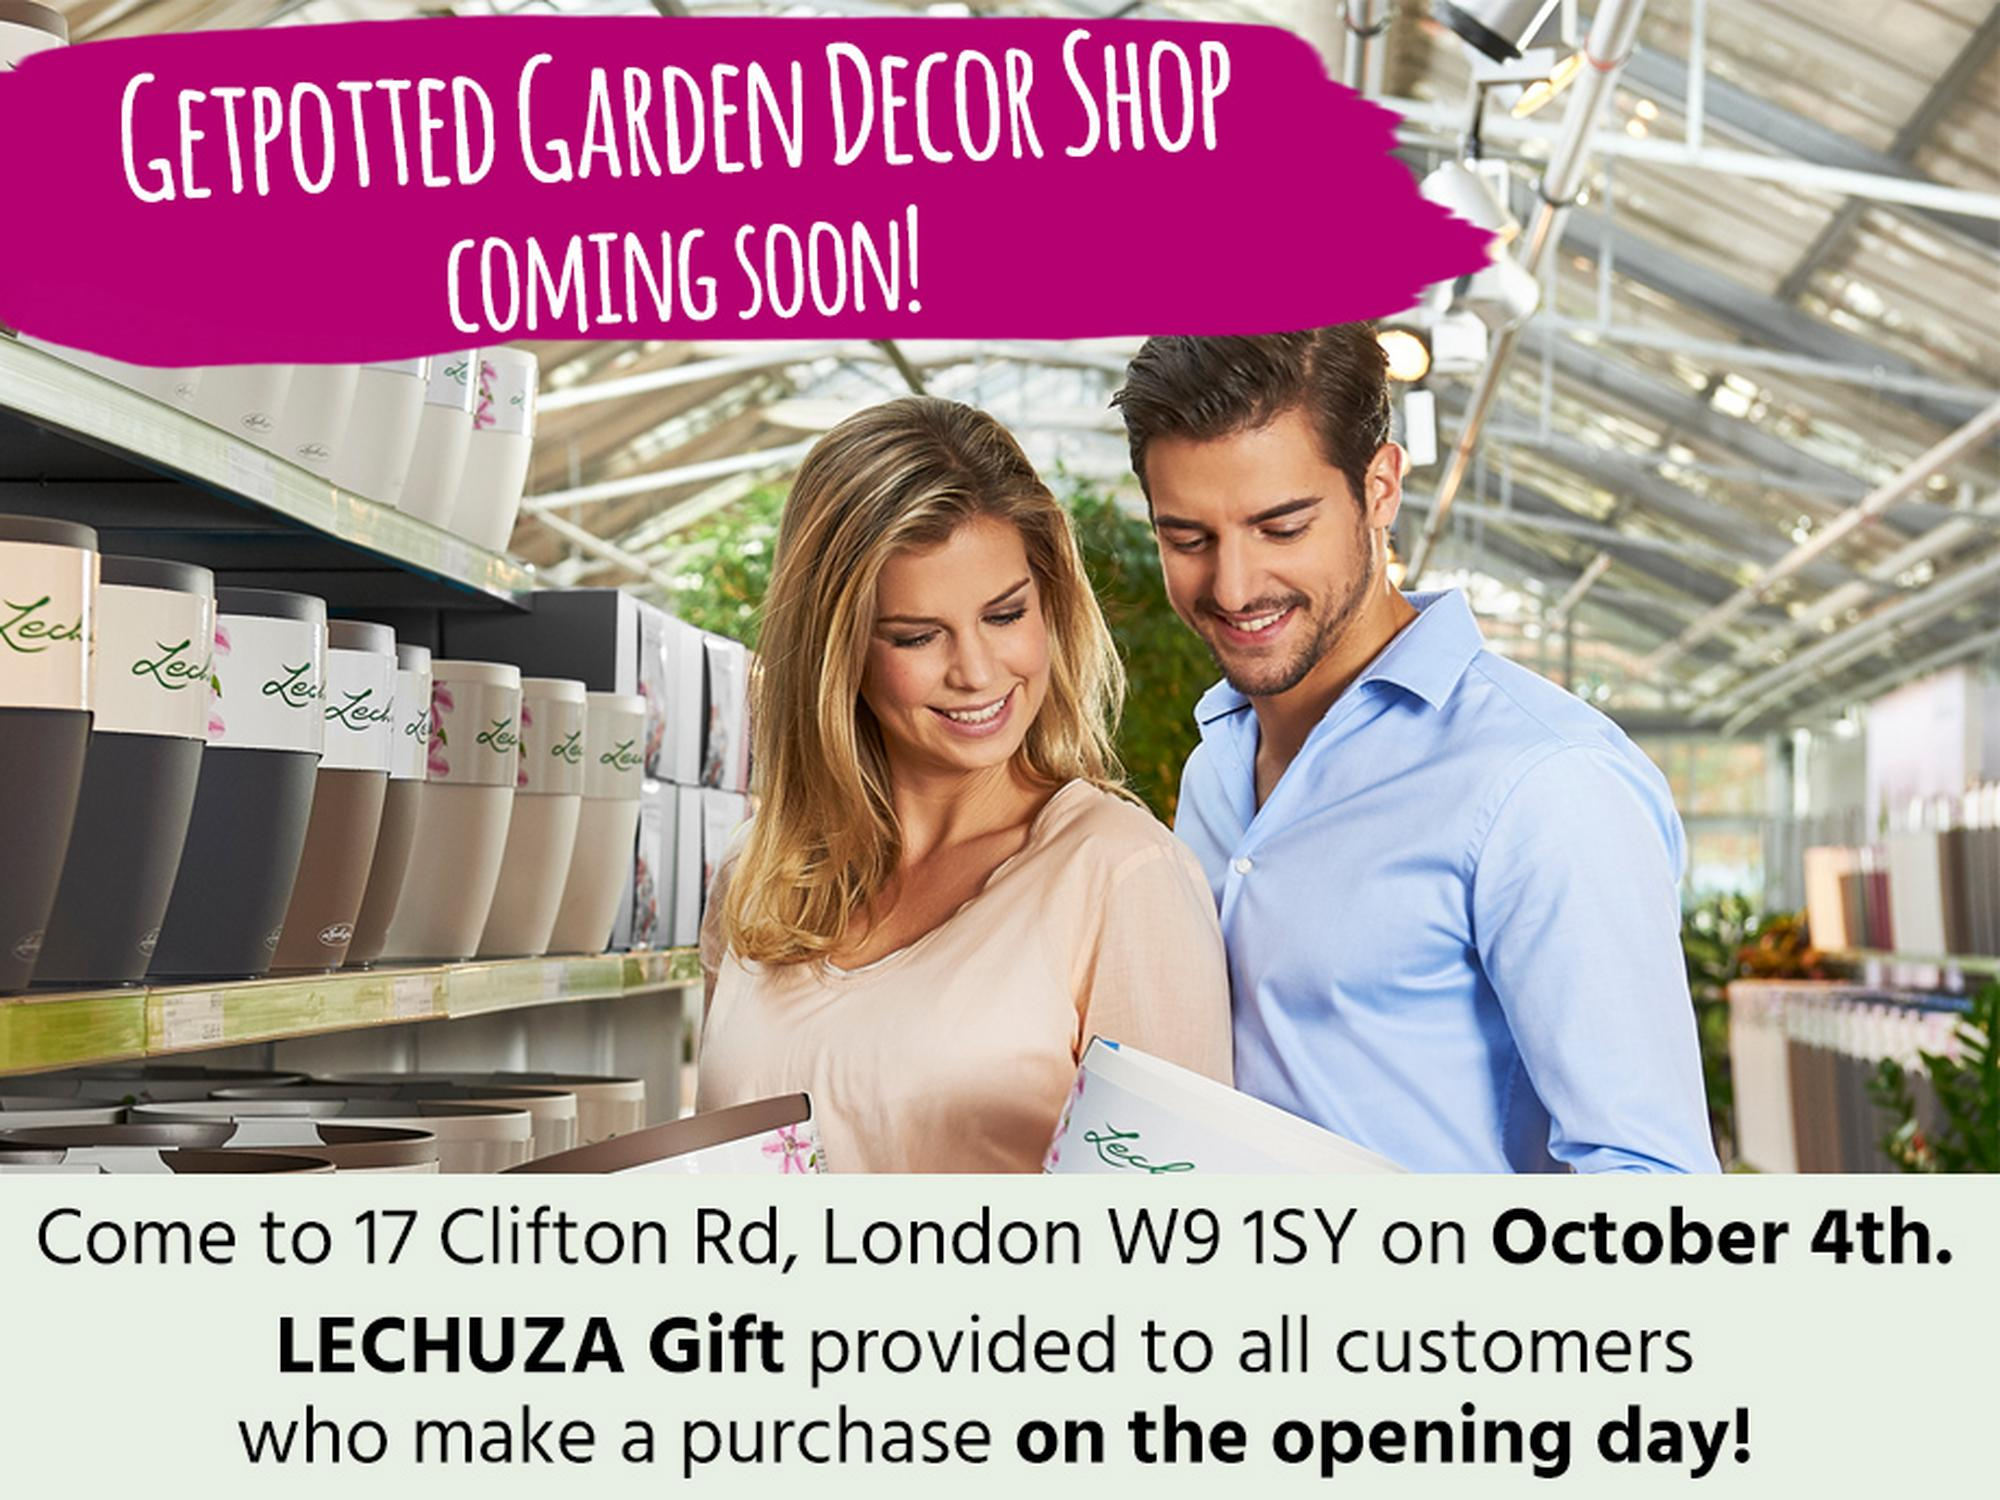 Getpotted Garden Decor Shop in London coming soon!